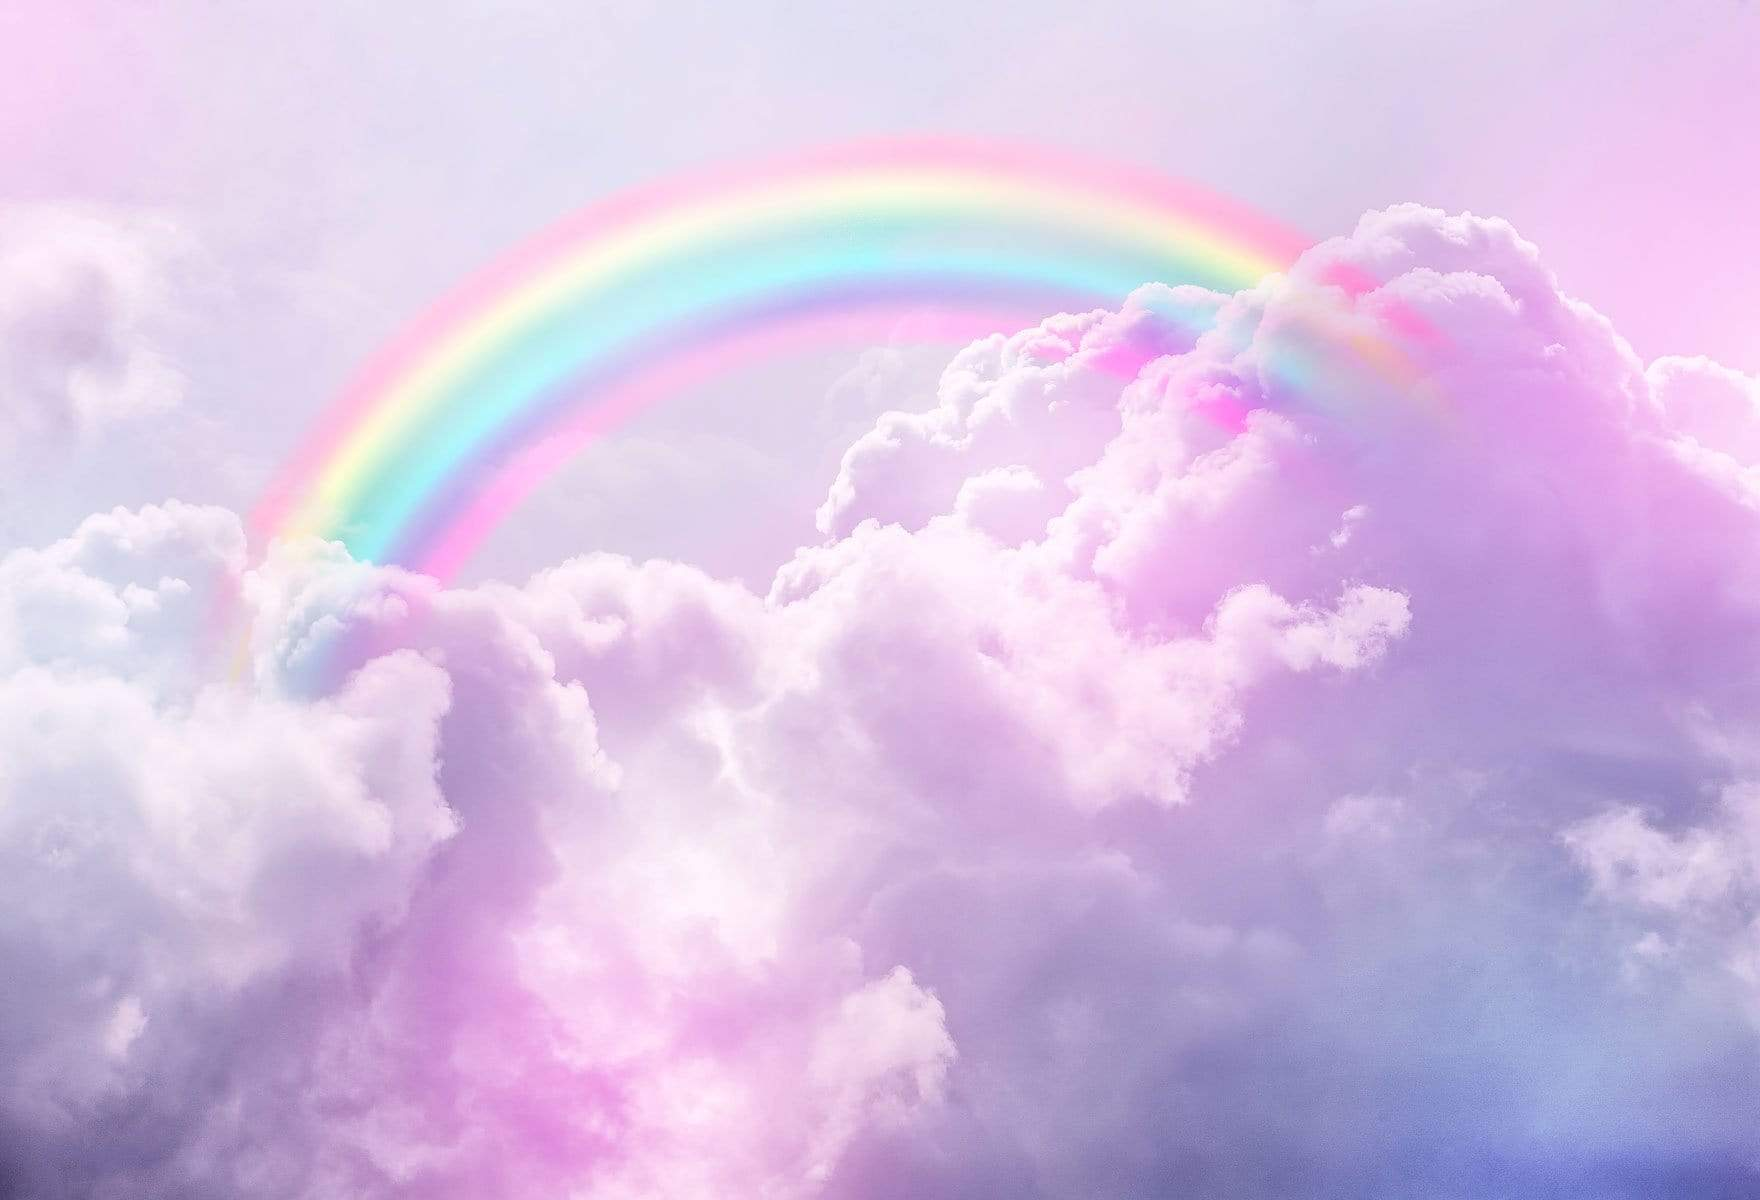 Load image into Gallery viewer, Katebackdrop:Kate Rainbow sky cloud Backdrop Pink Watercolor Background